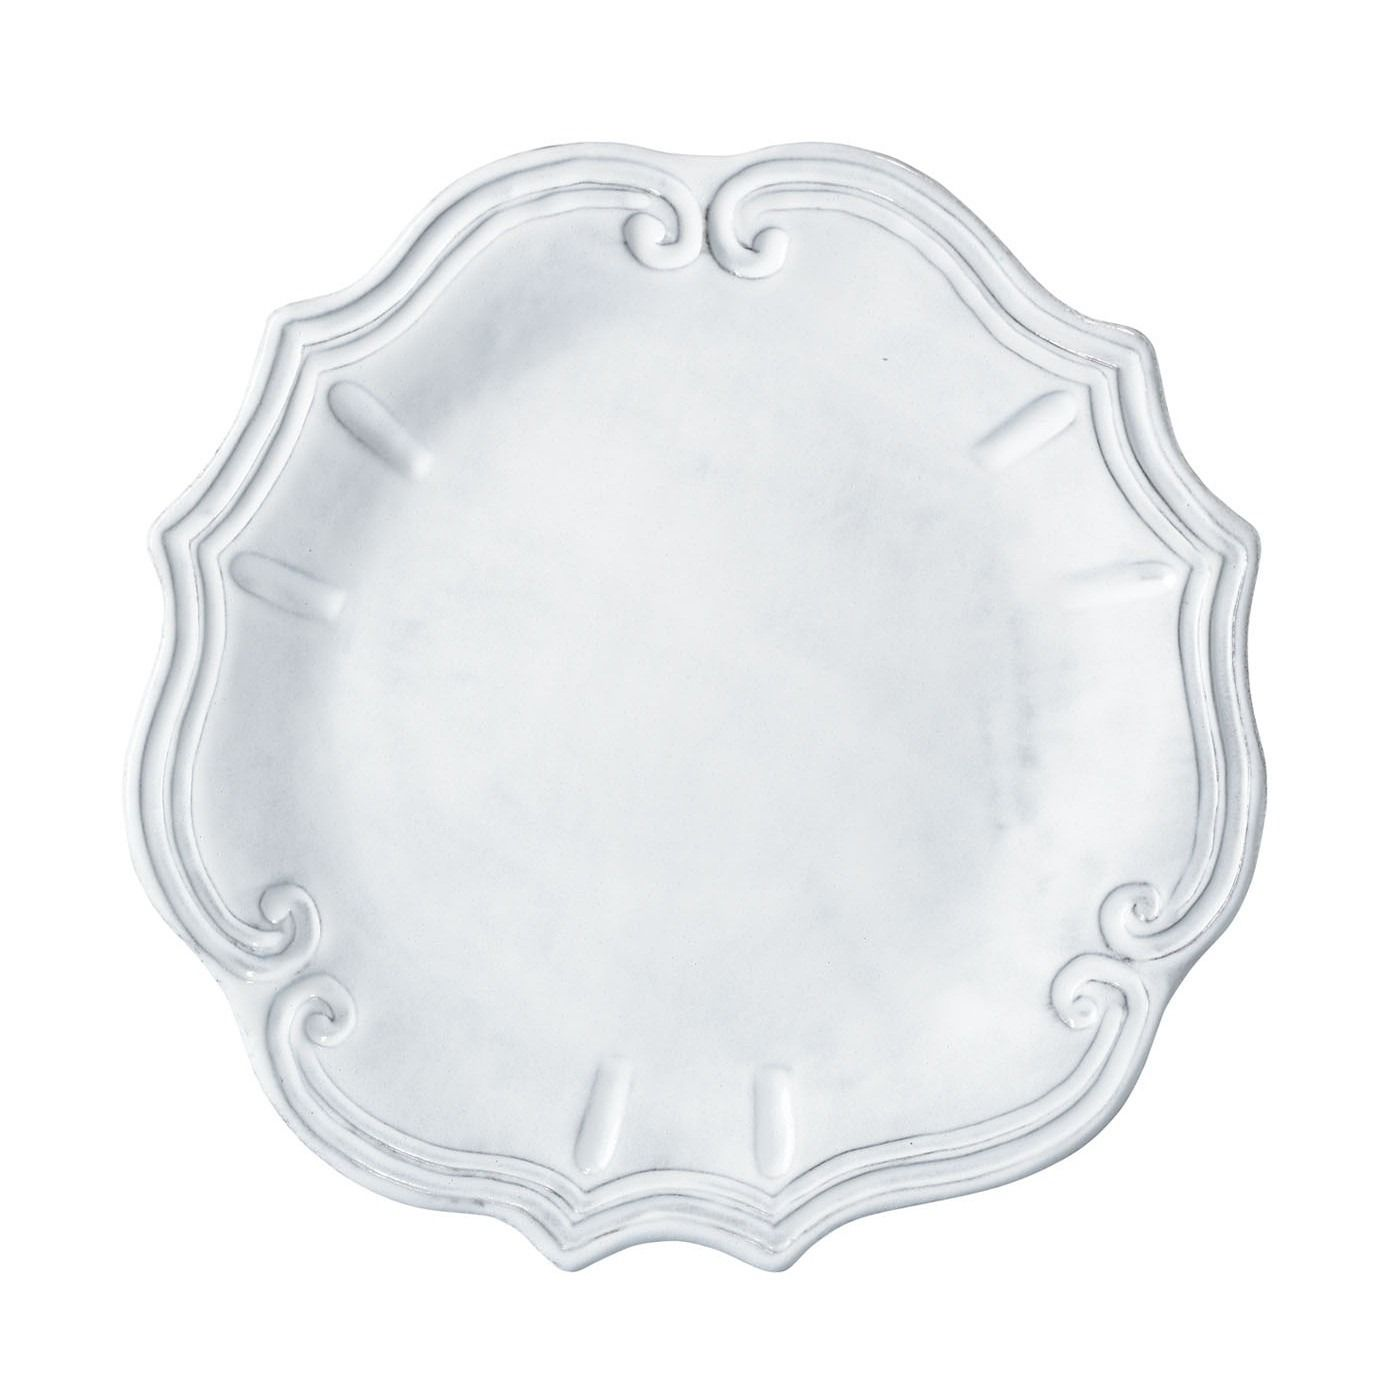 Mix and match Incanto White Baroque Dinner Plates with our other patterns in Incanto to create your own unique setting! Handmade of terra marrone in Veneto.  sc 1 st  Pinterest & Mix and match the Incanto White Baroque Dinner Plates with our other ...